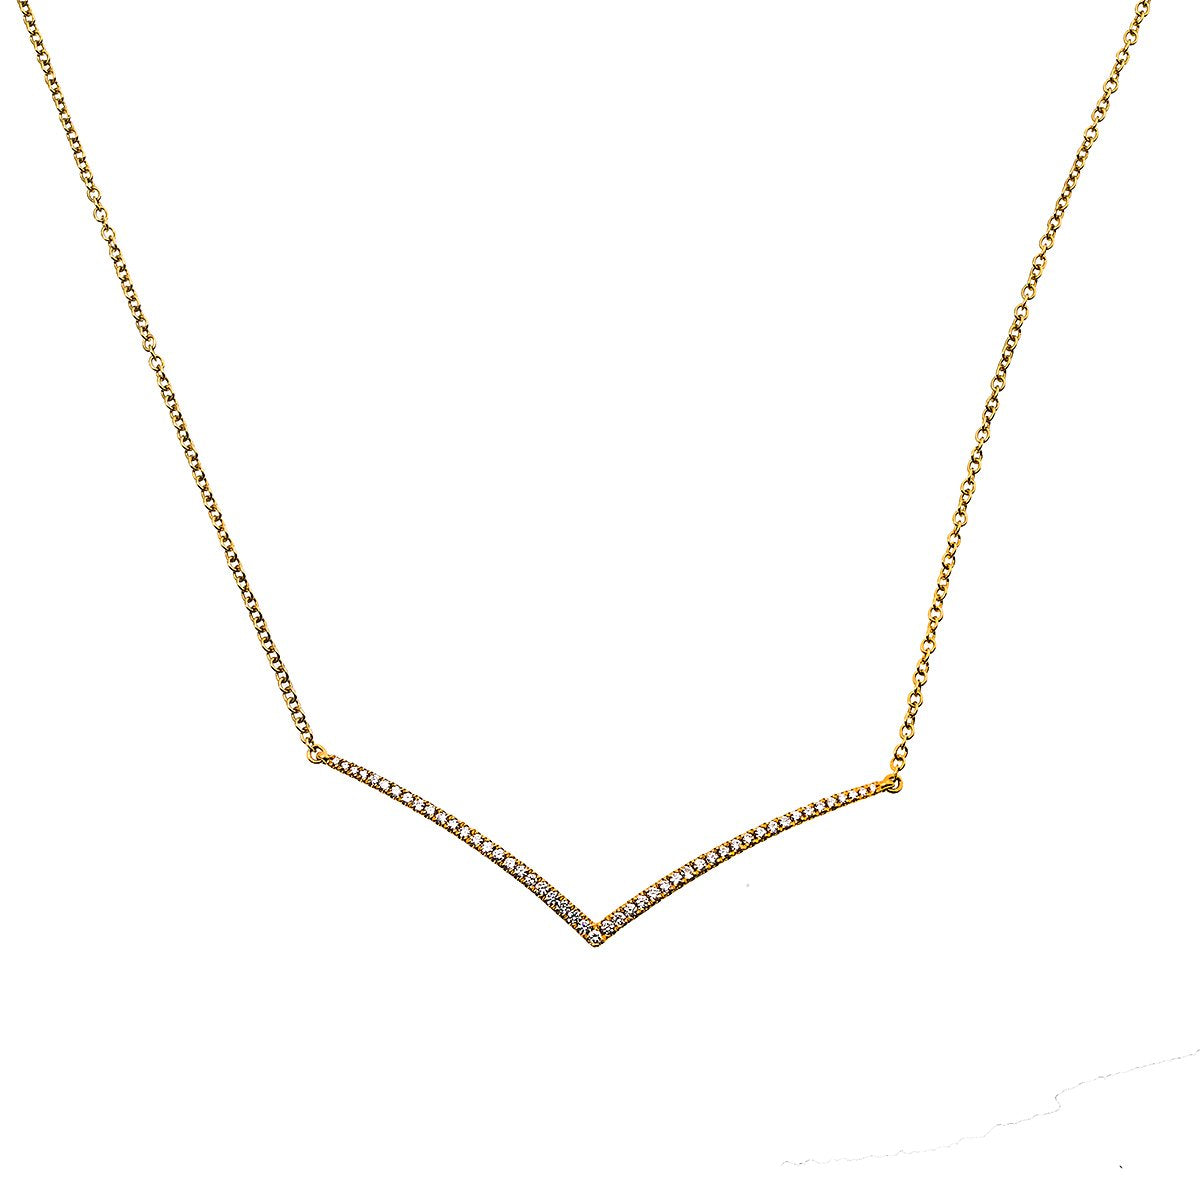 "18K Rose Gold 17"" Women's Necklace With 0.45 CT Diamonds"